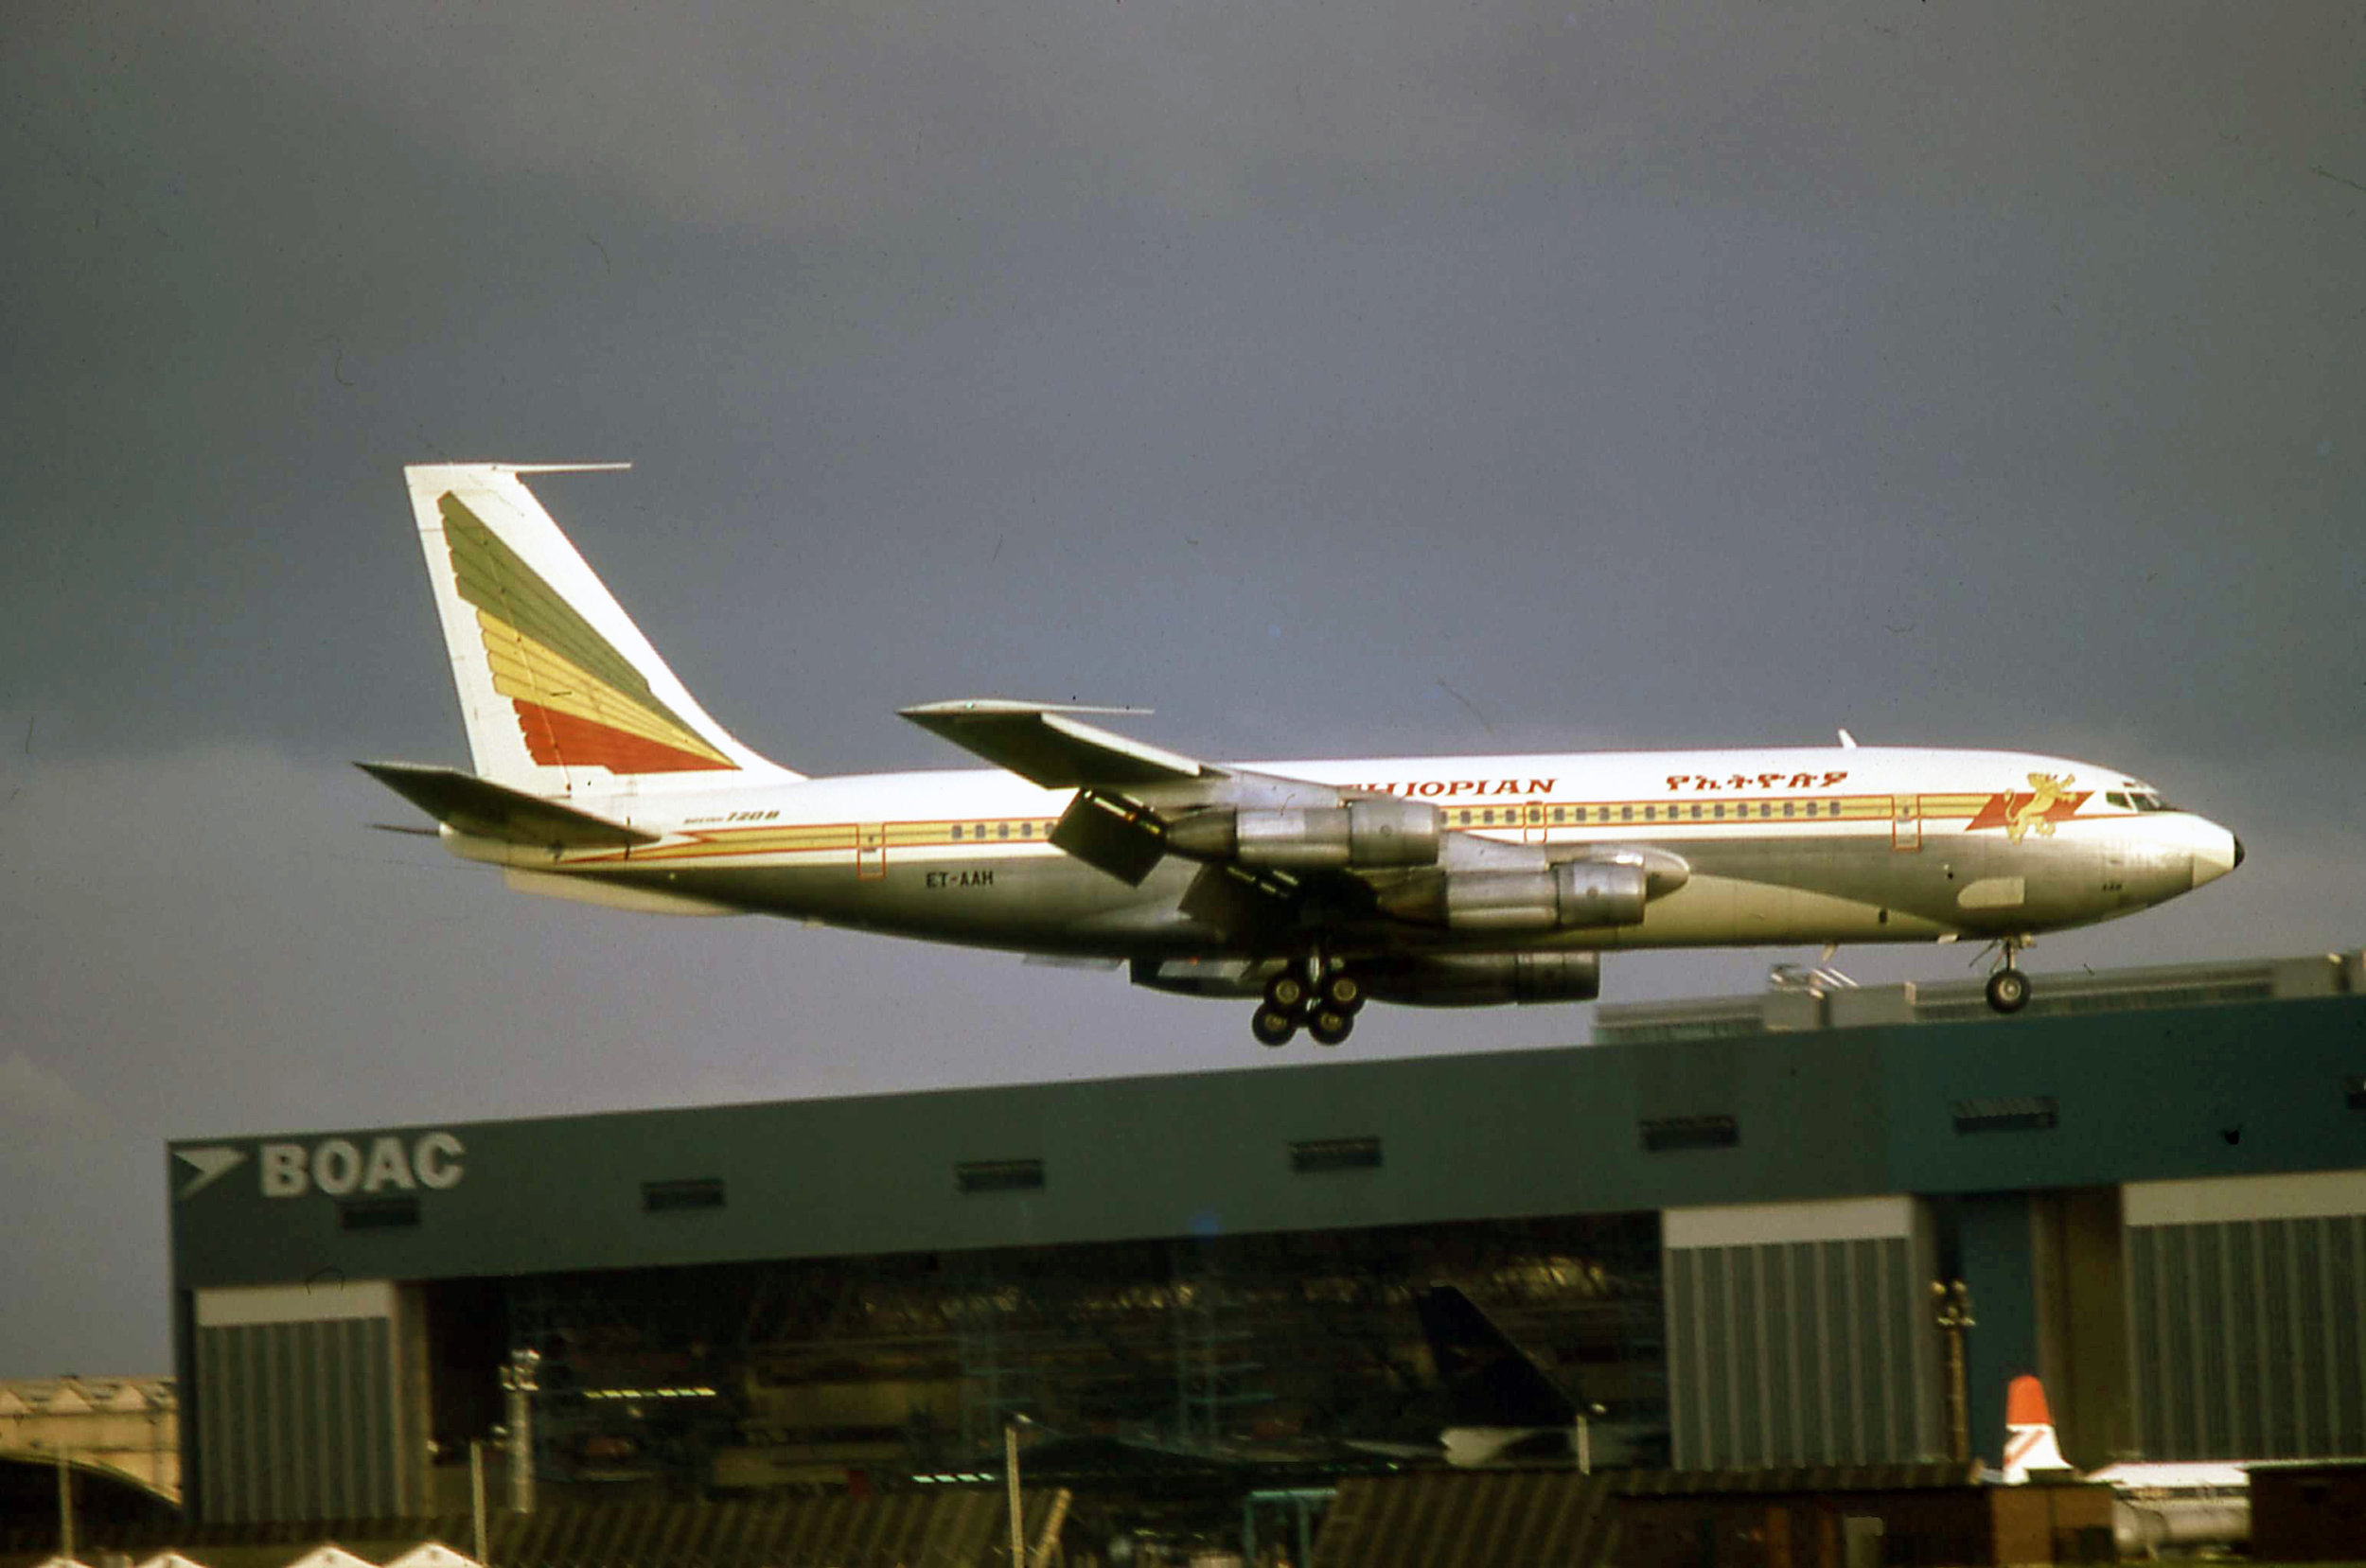 """Ethiopian Airlines Boeing 720 ET-AAH landing at Heathrow in September 1974. With a BOAC 747 classic where else but in the BOAC hangars at the rear and the """"training Comet"""" outside…nostalgia at its best?"""